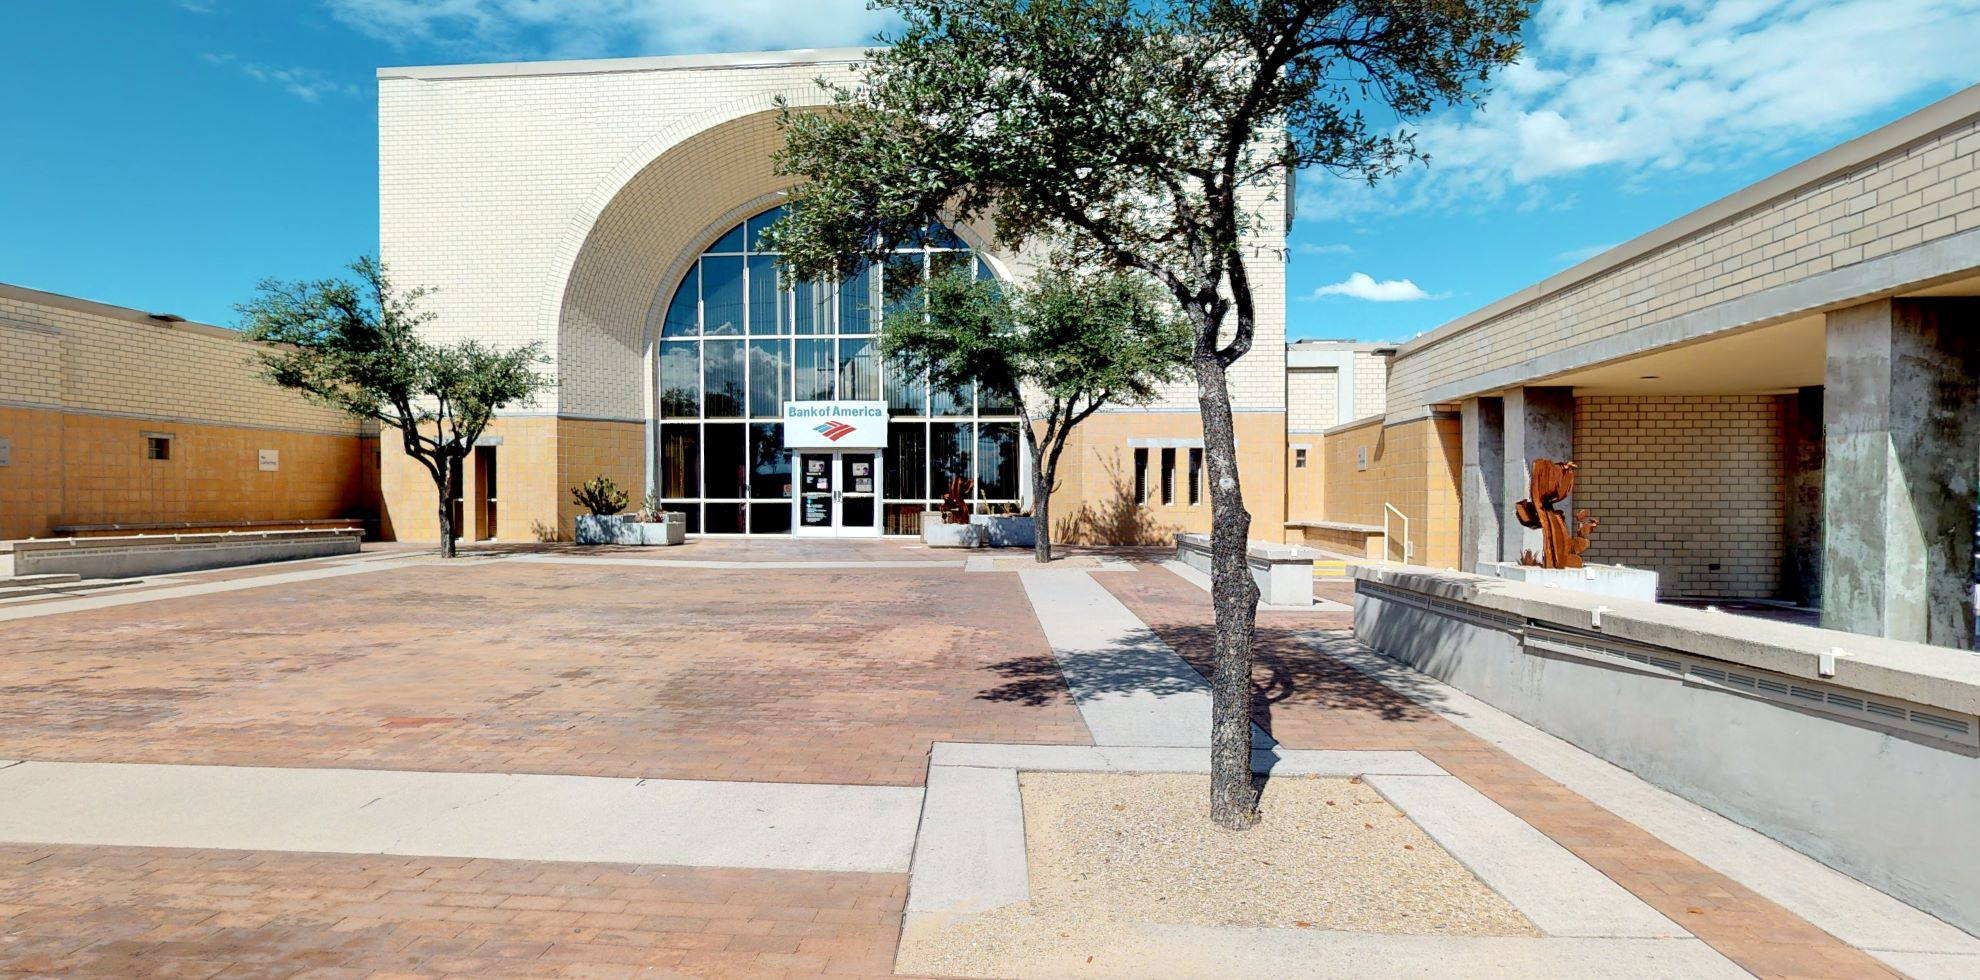 Bank of America financial center with drive-thru ATM   2080 W Ina Rd, Tucson, AZ 85704